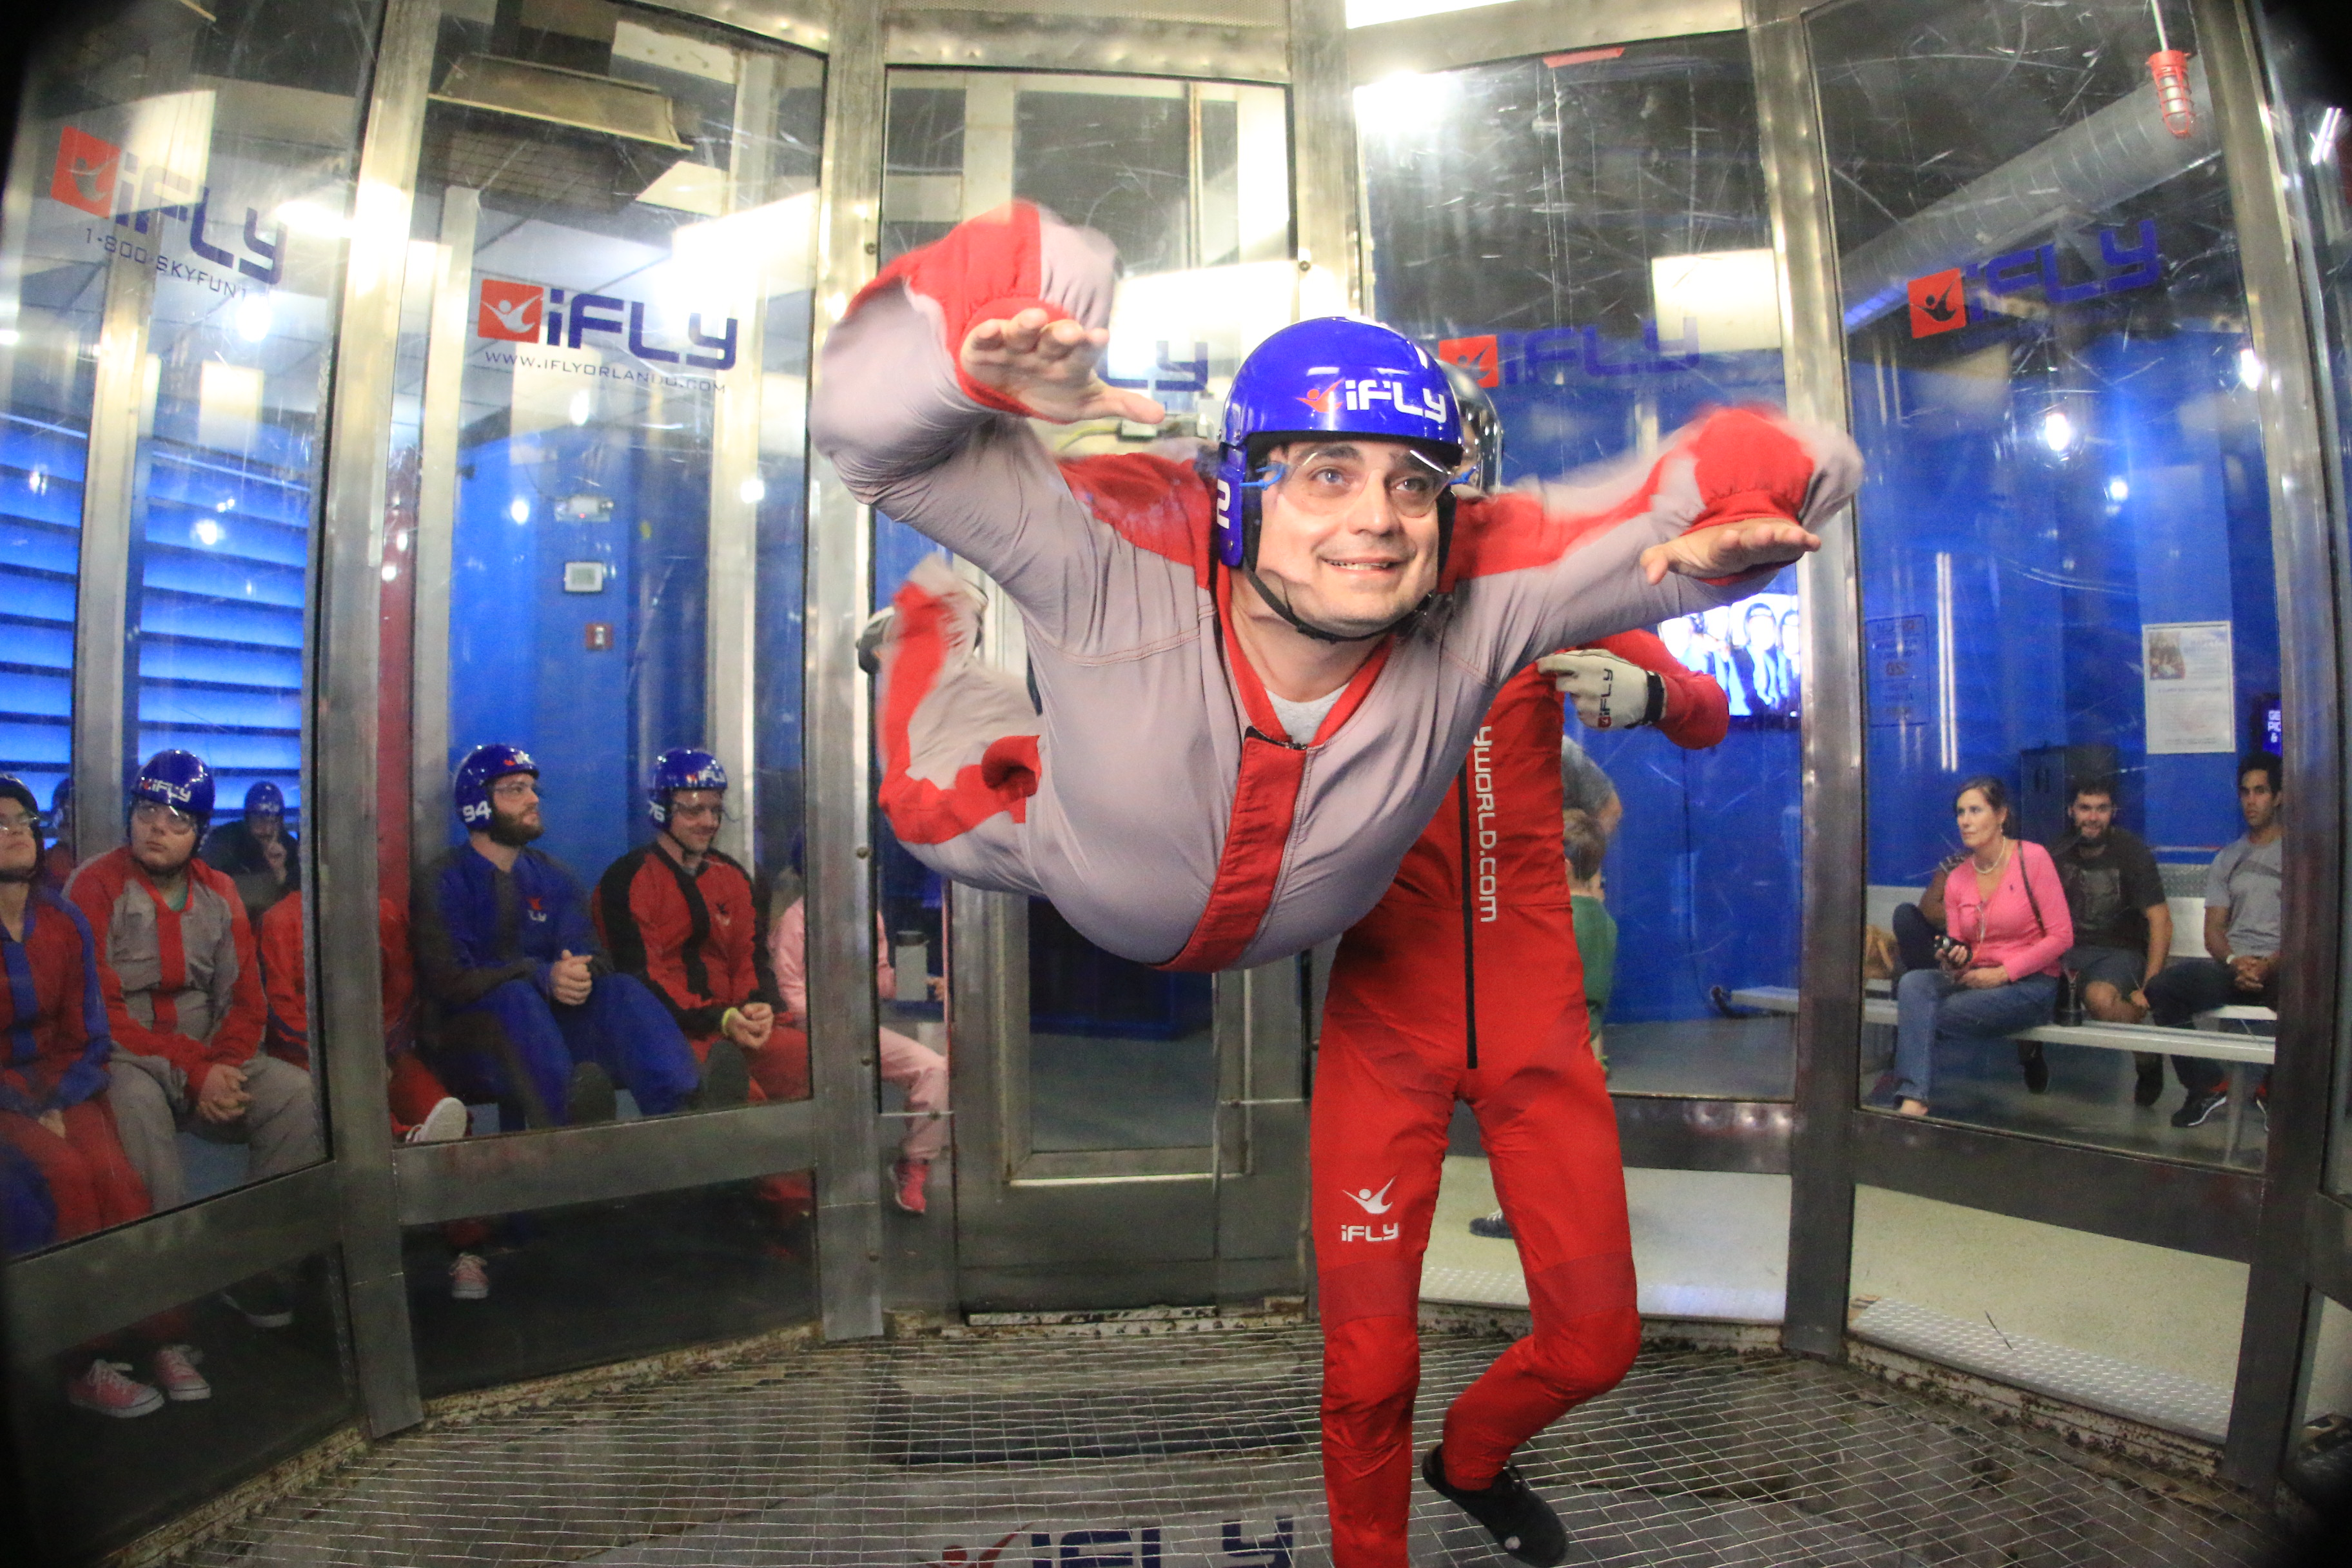 Indoor Skydiving at iFly Orlando - Review and Tips